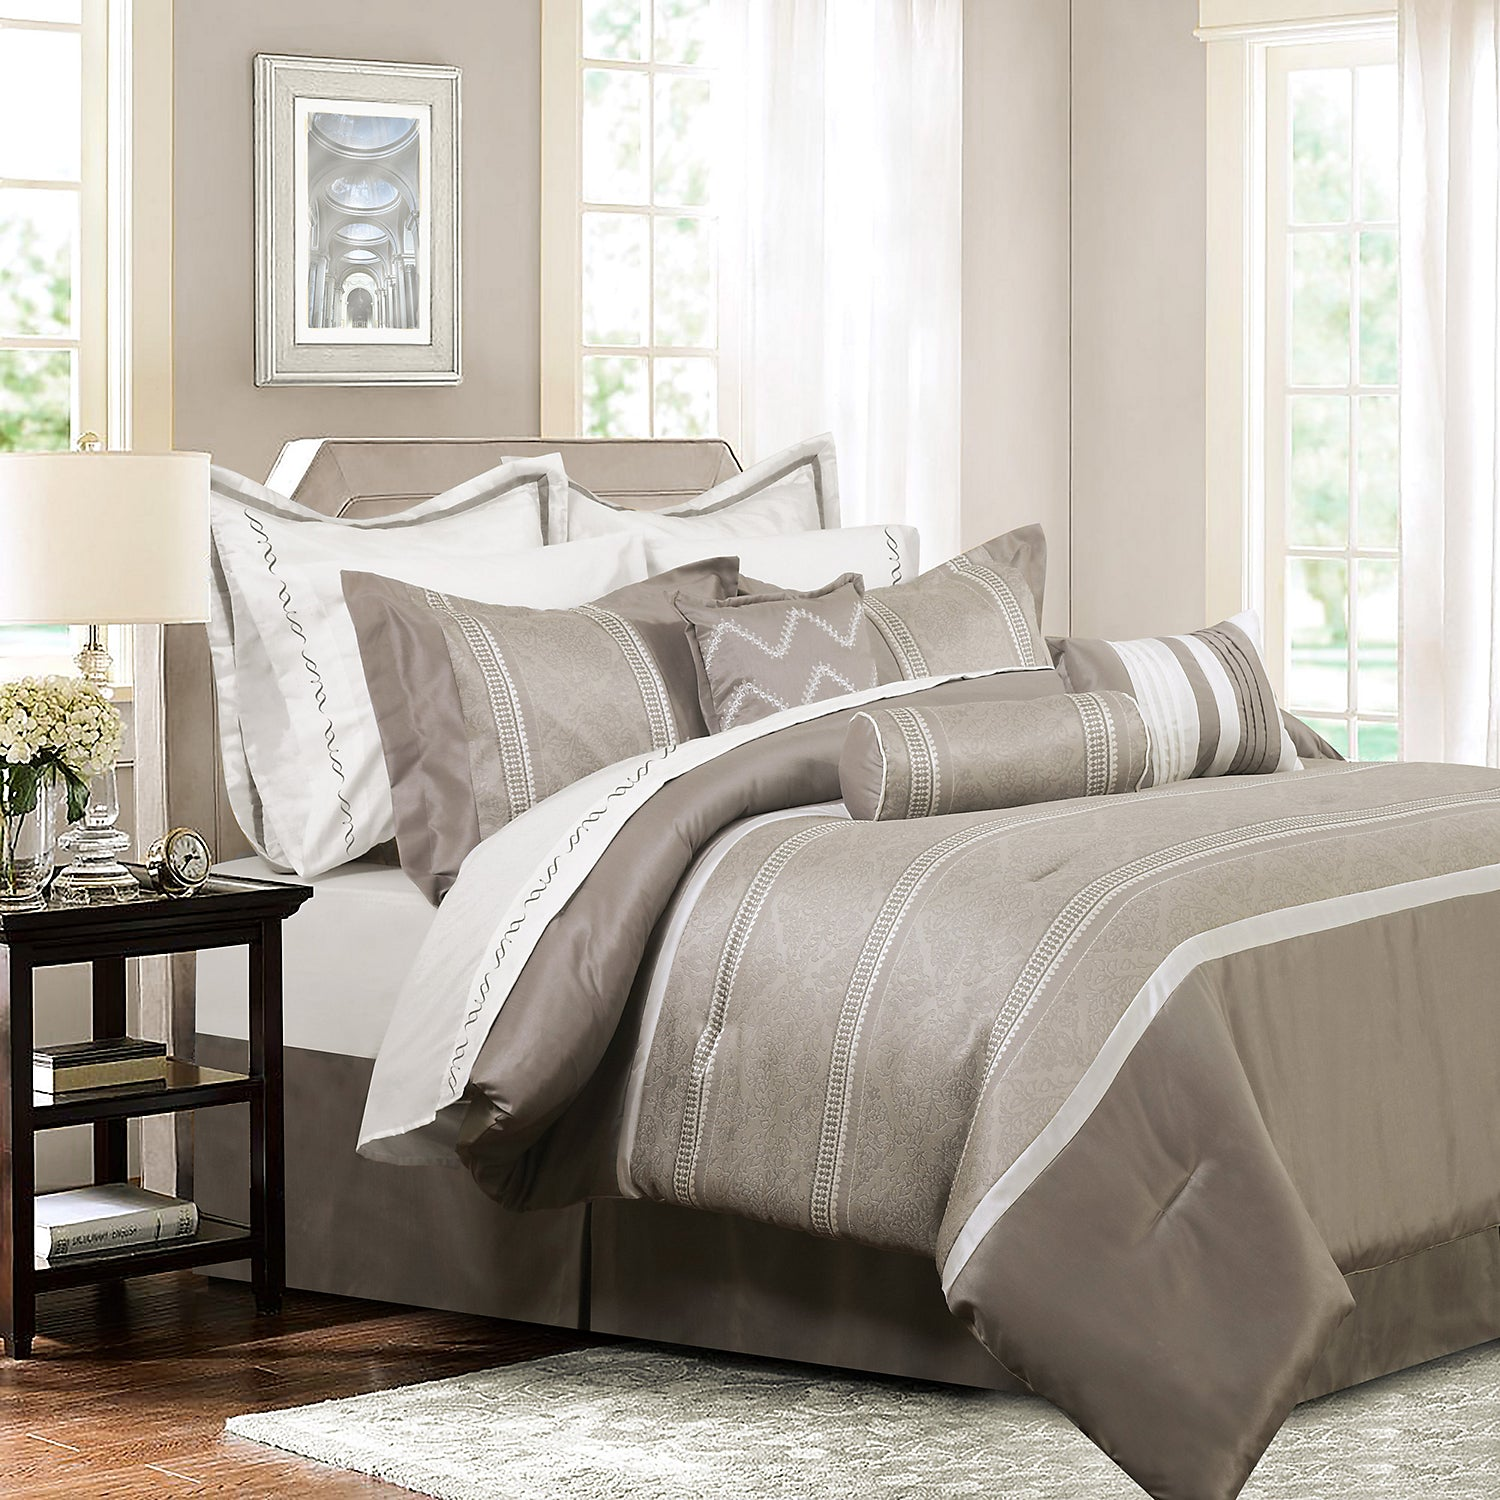 Palermo 7 Piece King Comforter Set The Brick